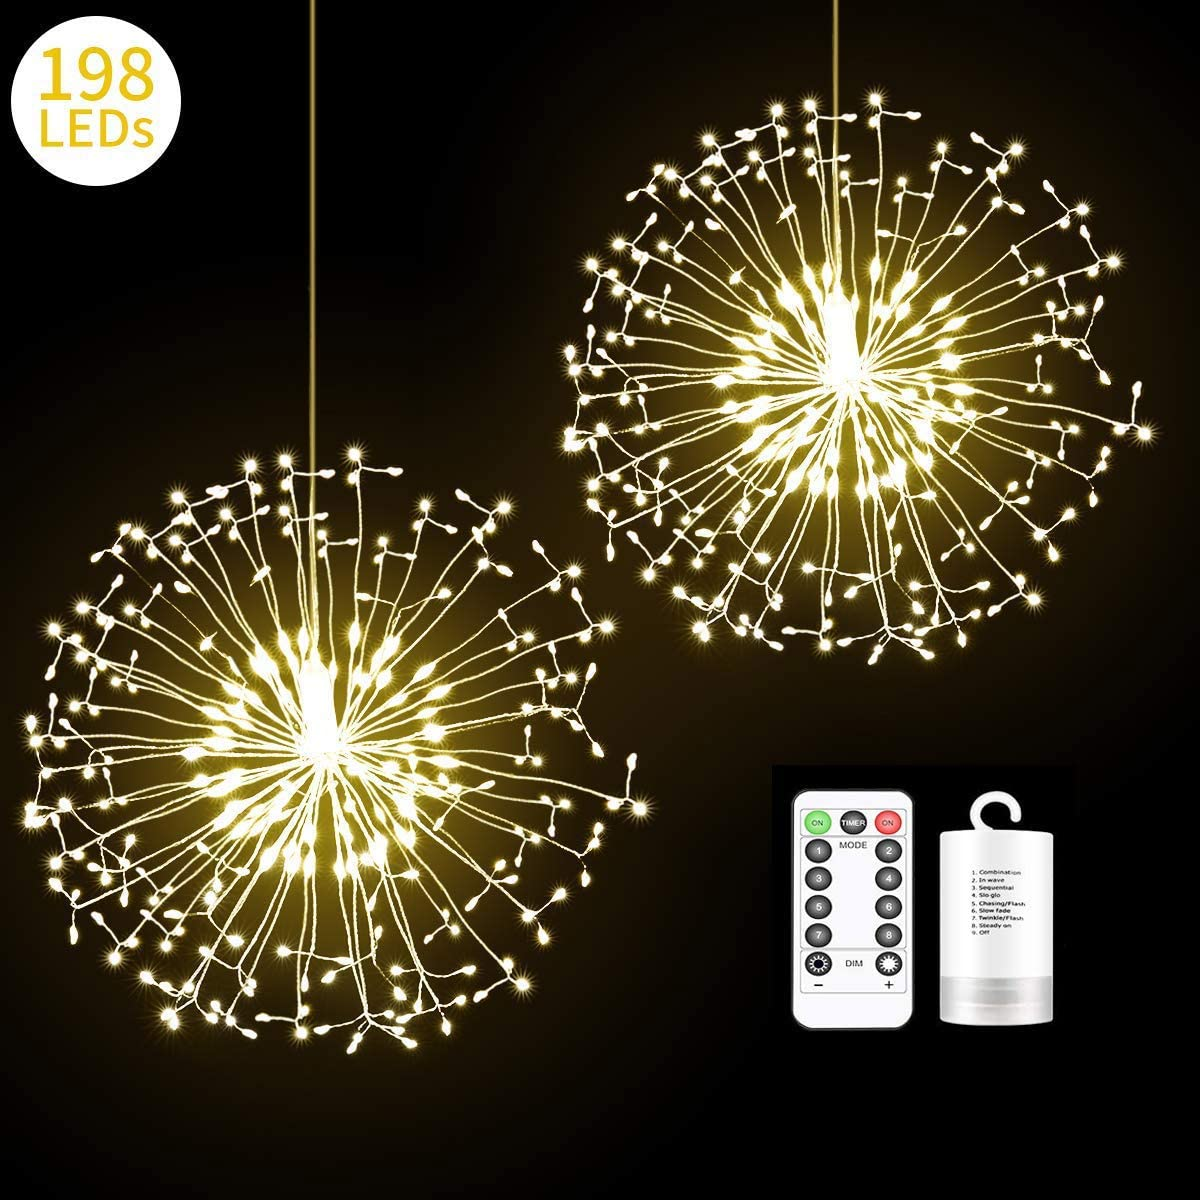 Decem Firework Lights Home,Party 2 Pack 198 LED Dadelion Shape Fairy String Lights Battery Operated Twinkle Starburst DIY Lights with Remote Control for Christmas Outdoor Decoration